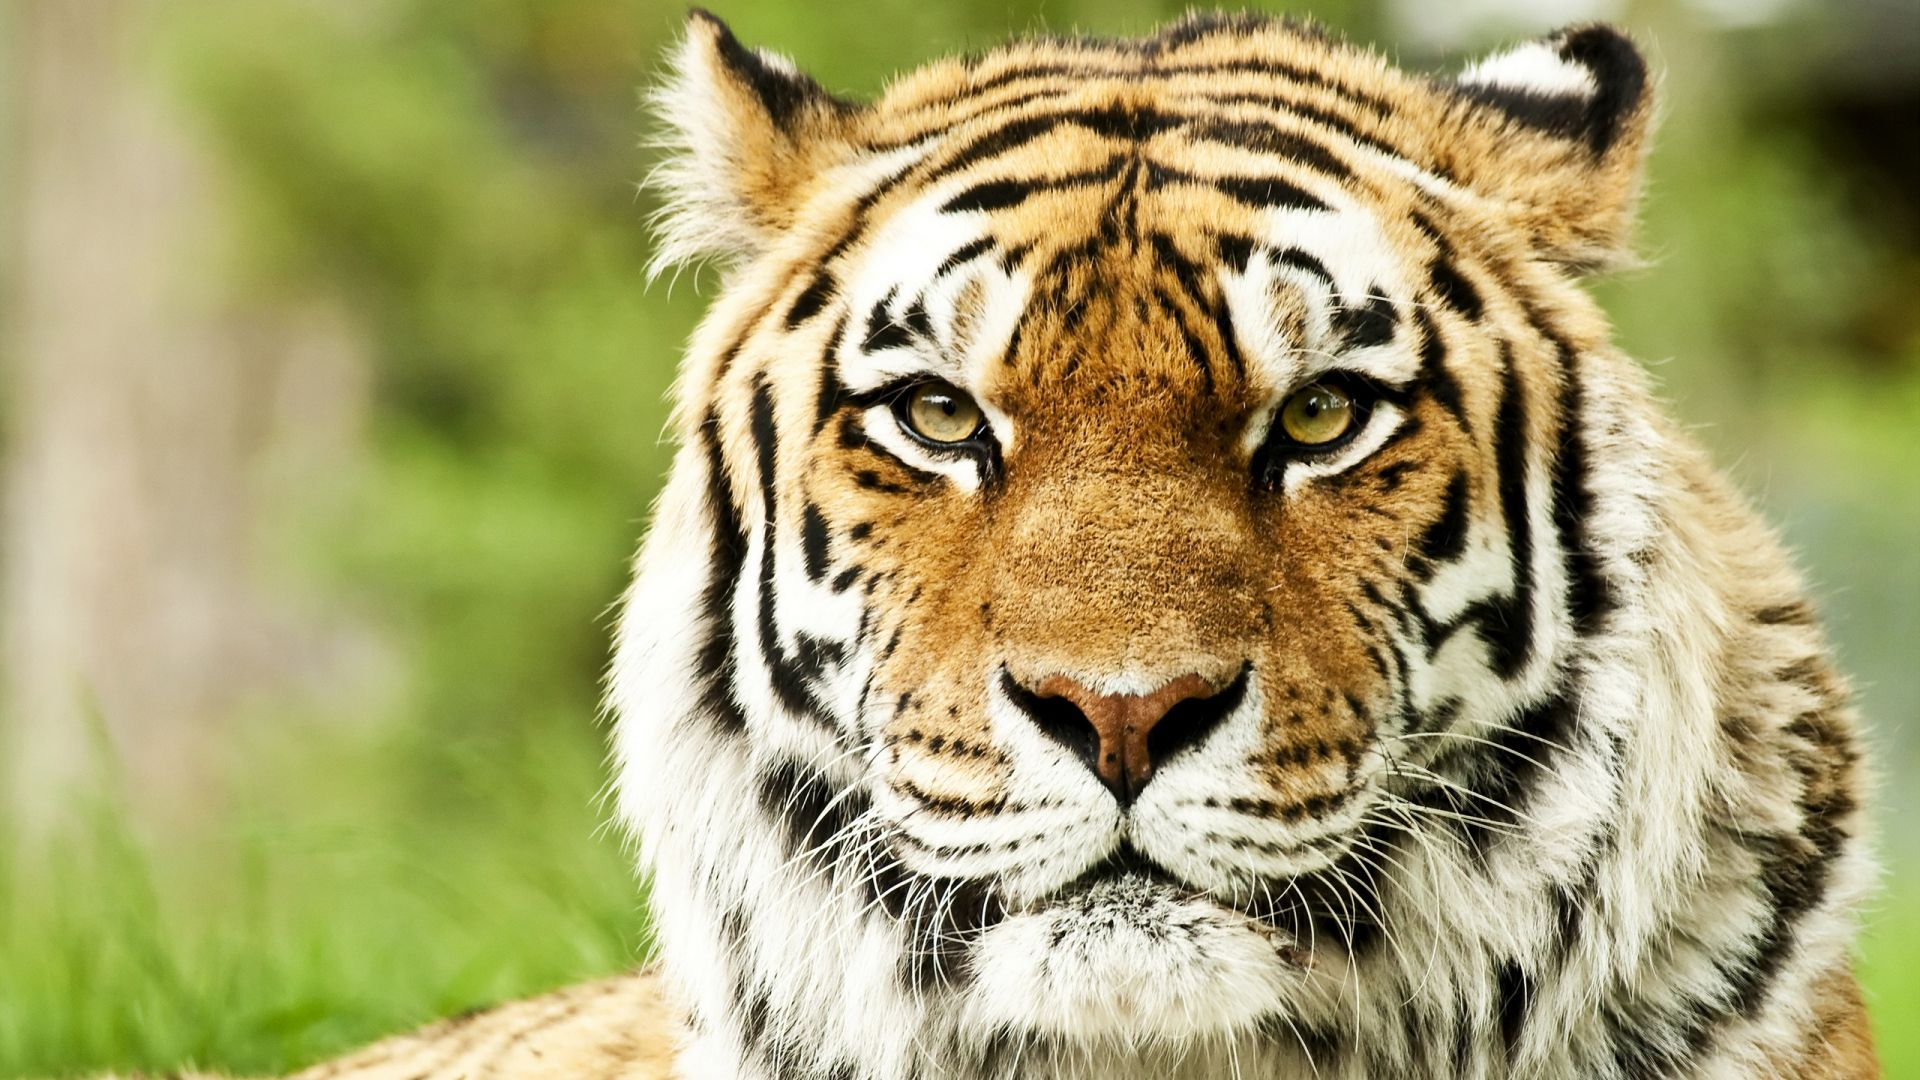 Full hd 1080p tiger wallpapers hd desktop backgrounds - Best animal wallpaper download ...